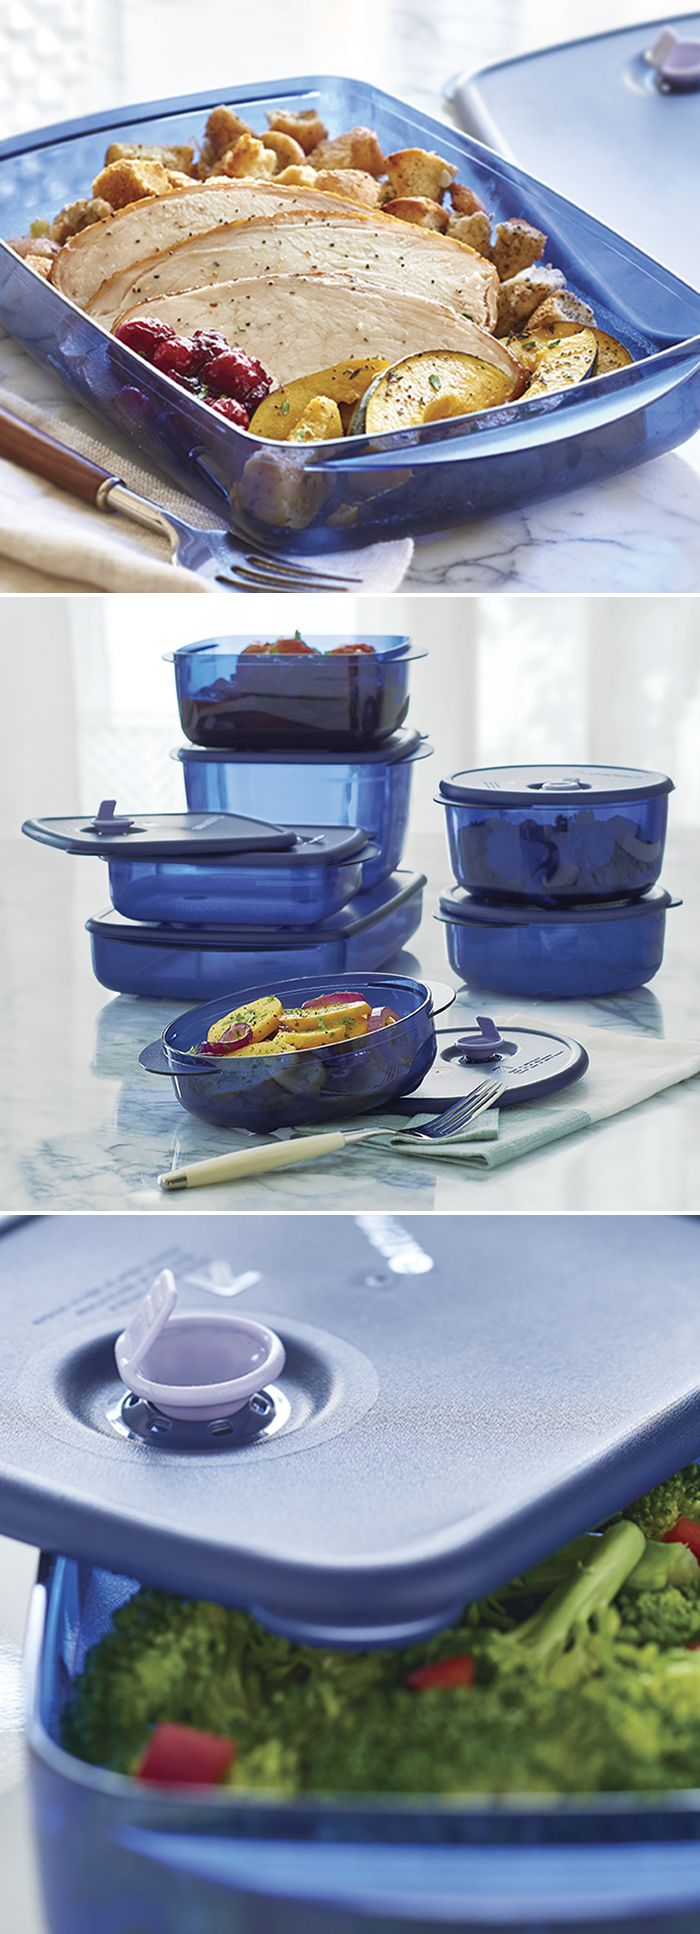 Vent 'N Serve Containers. Why cook twice when once will do? Plan for leftover-planovers! They're your smart solution to busy weeknight meals. The versatile Vent 'N Serve® Containers are fridge, freezer and microwave safe so they always fit with your dinner plans.